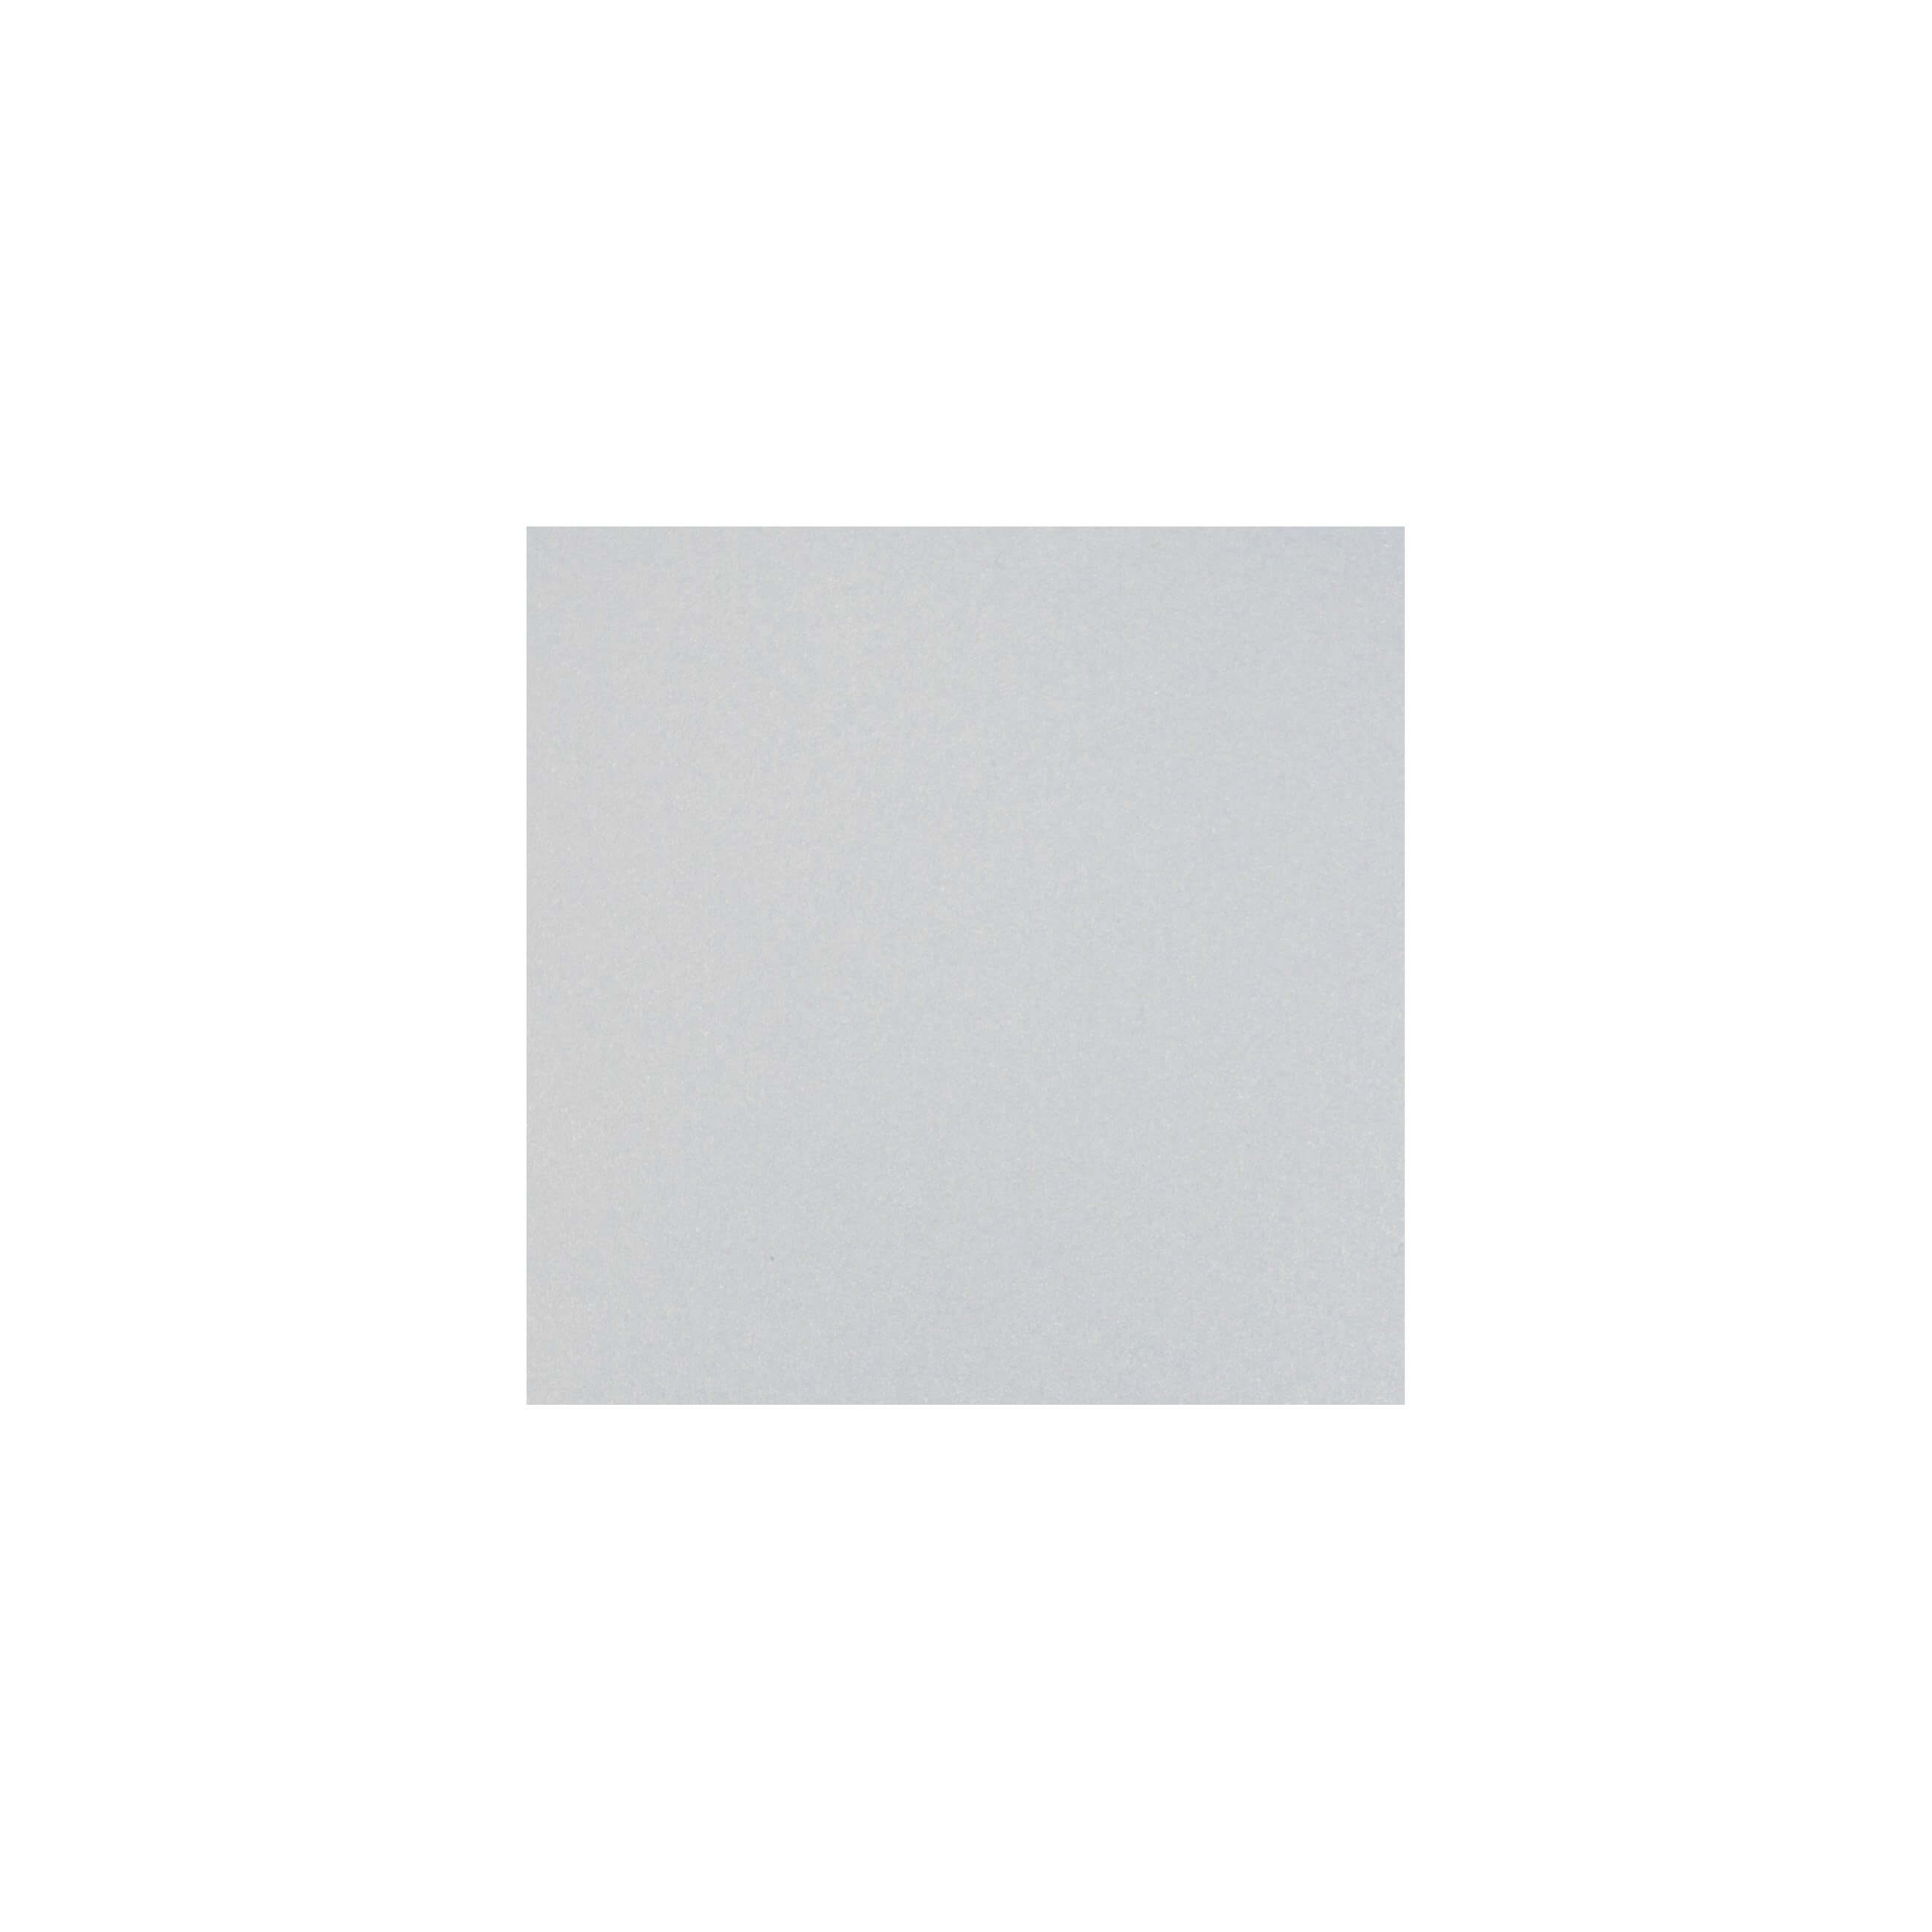 Cardstock 100mm Square - White Lustre